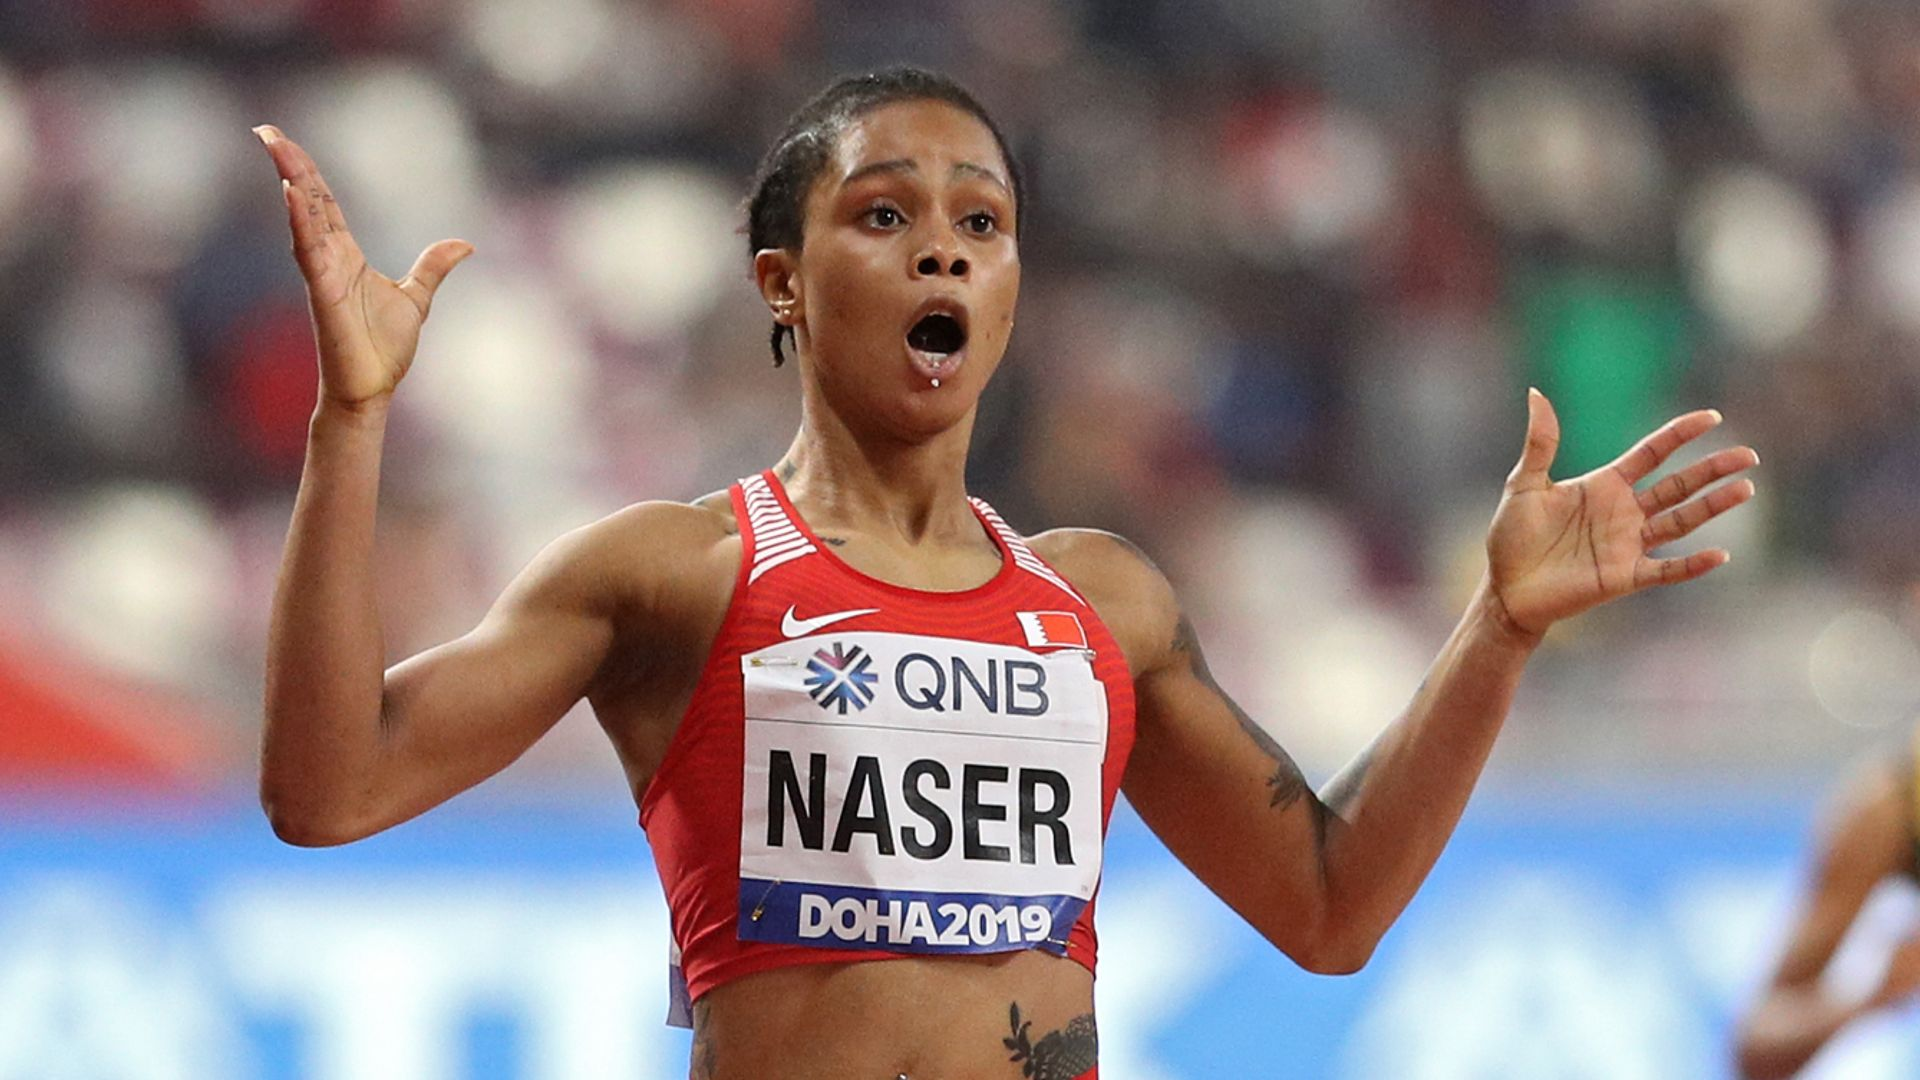 World 400m champion Naser provisionally suspended by AIU